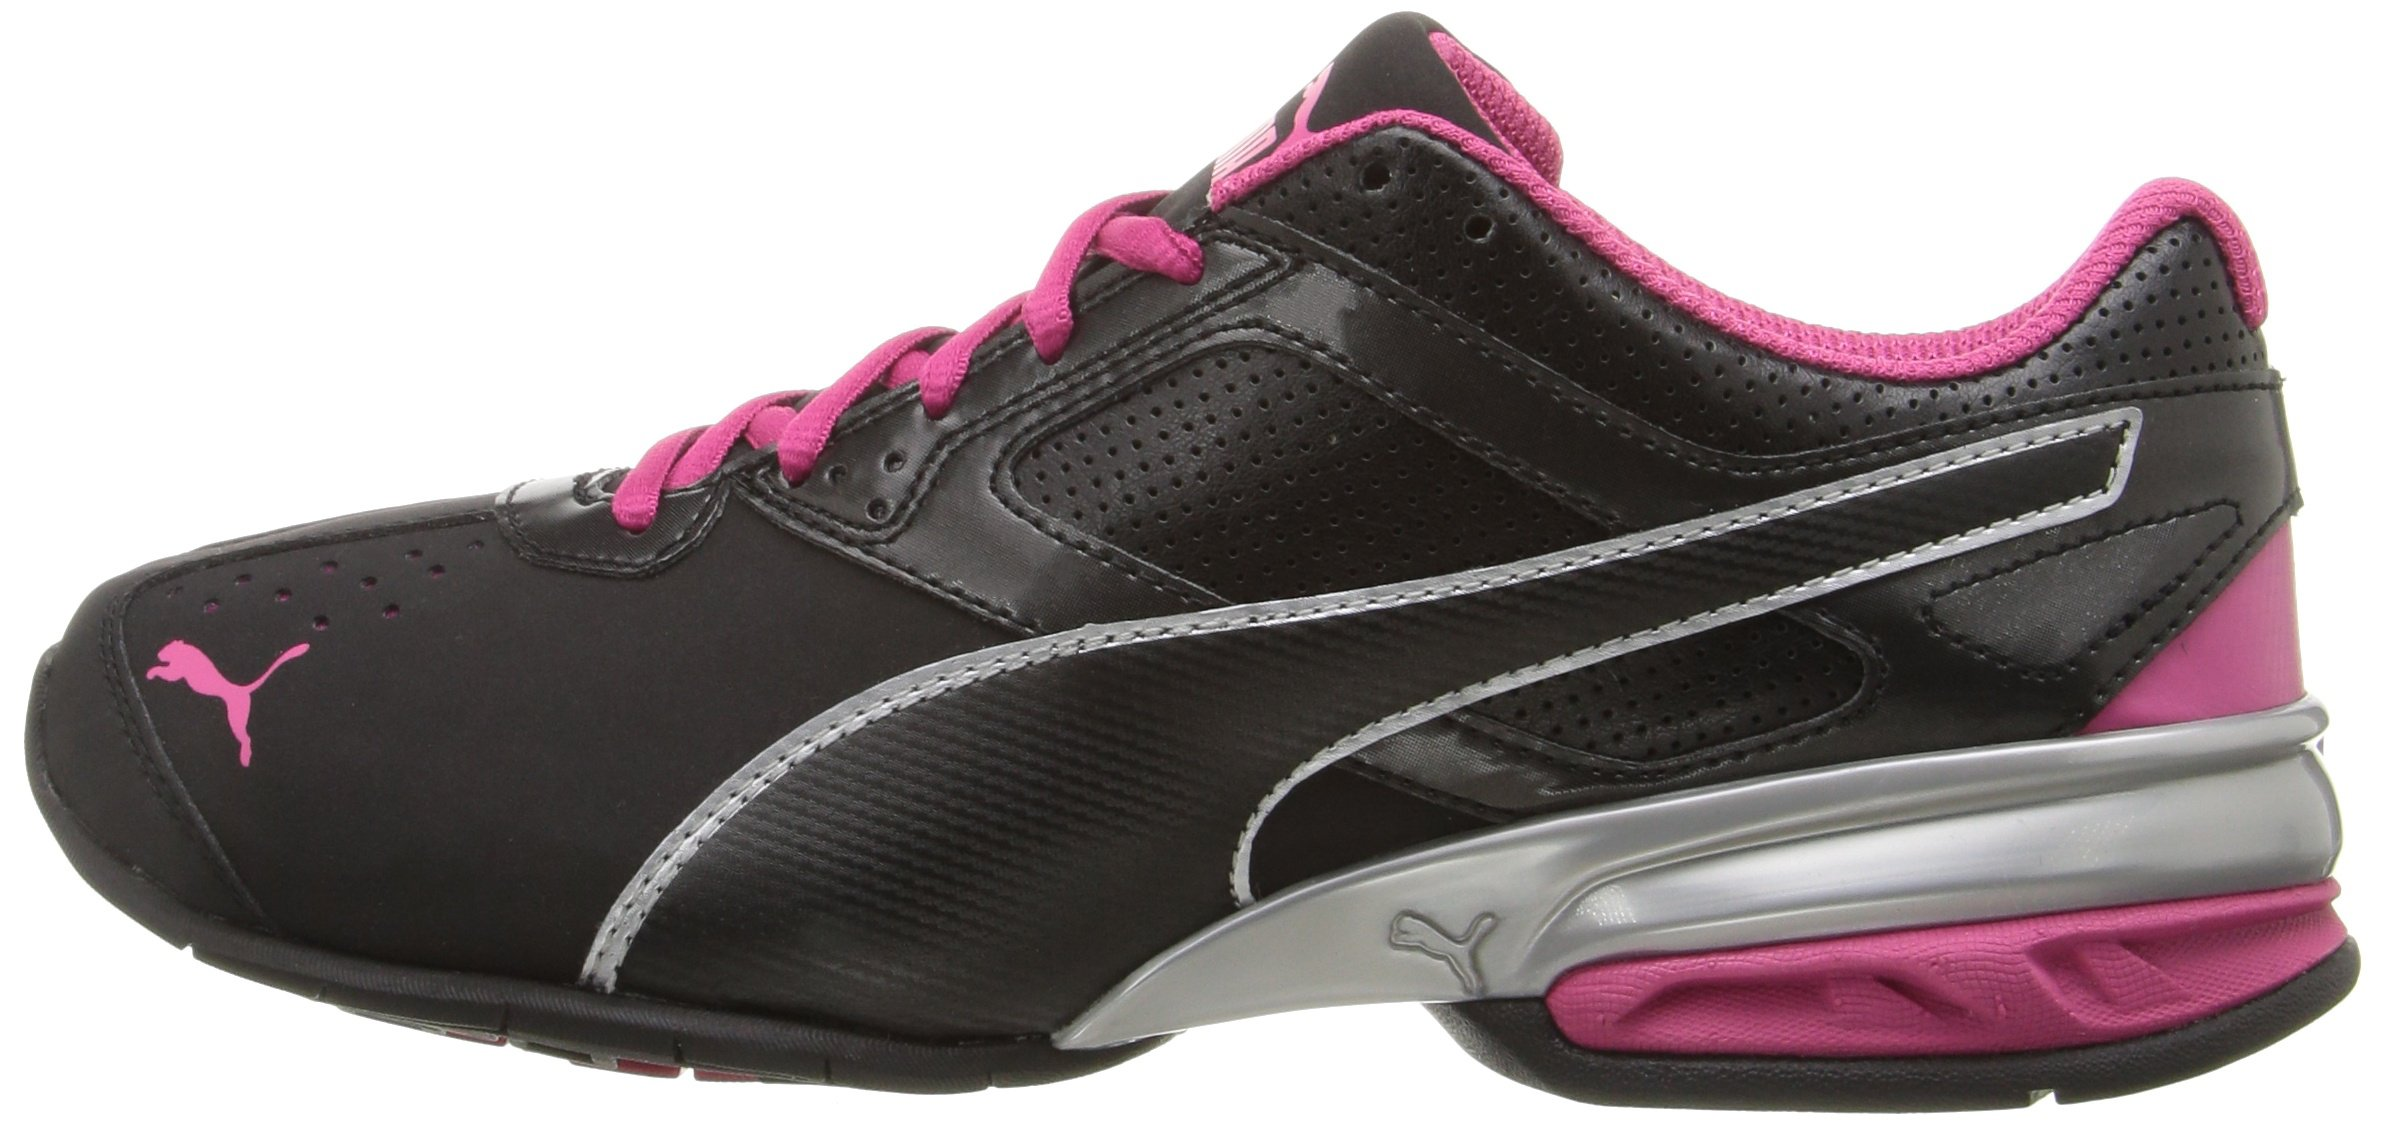 PUMA Women's Tazon 6 WN's fm Cross-Trainer Shoe Black Silver/Beetroot Purple, 7 M US by PUMA (Image #5)